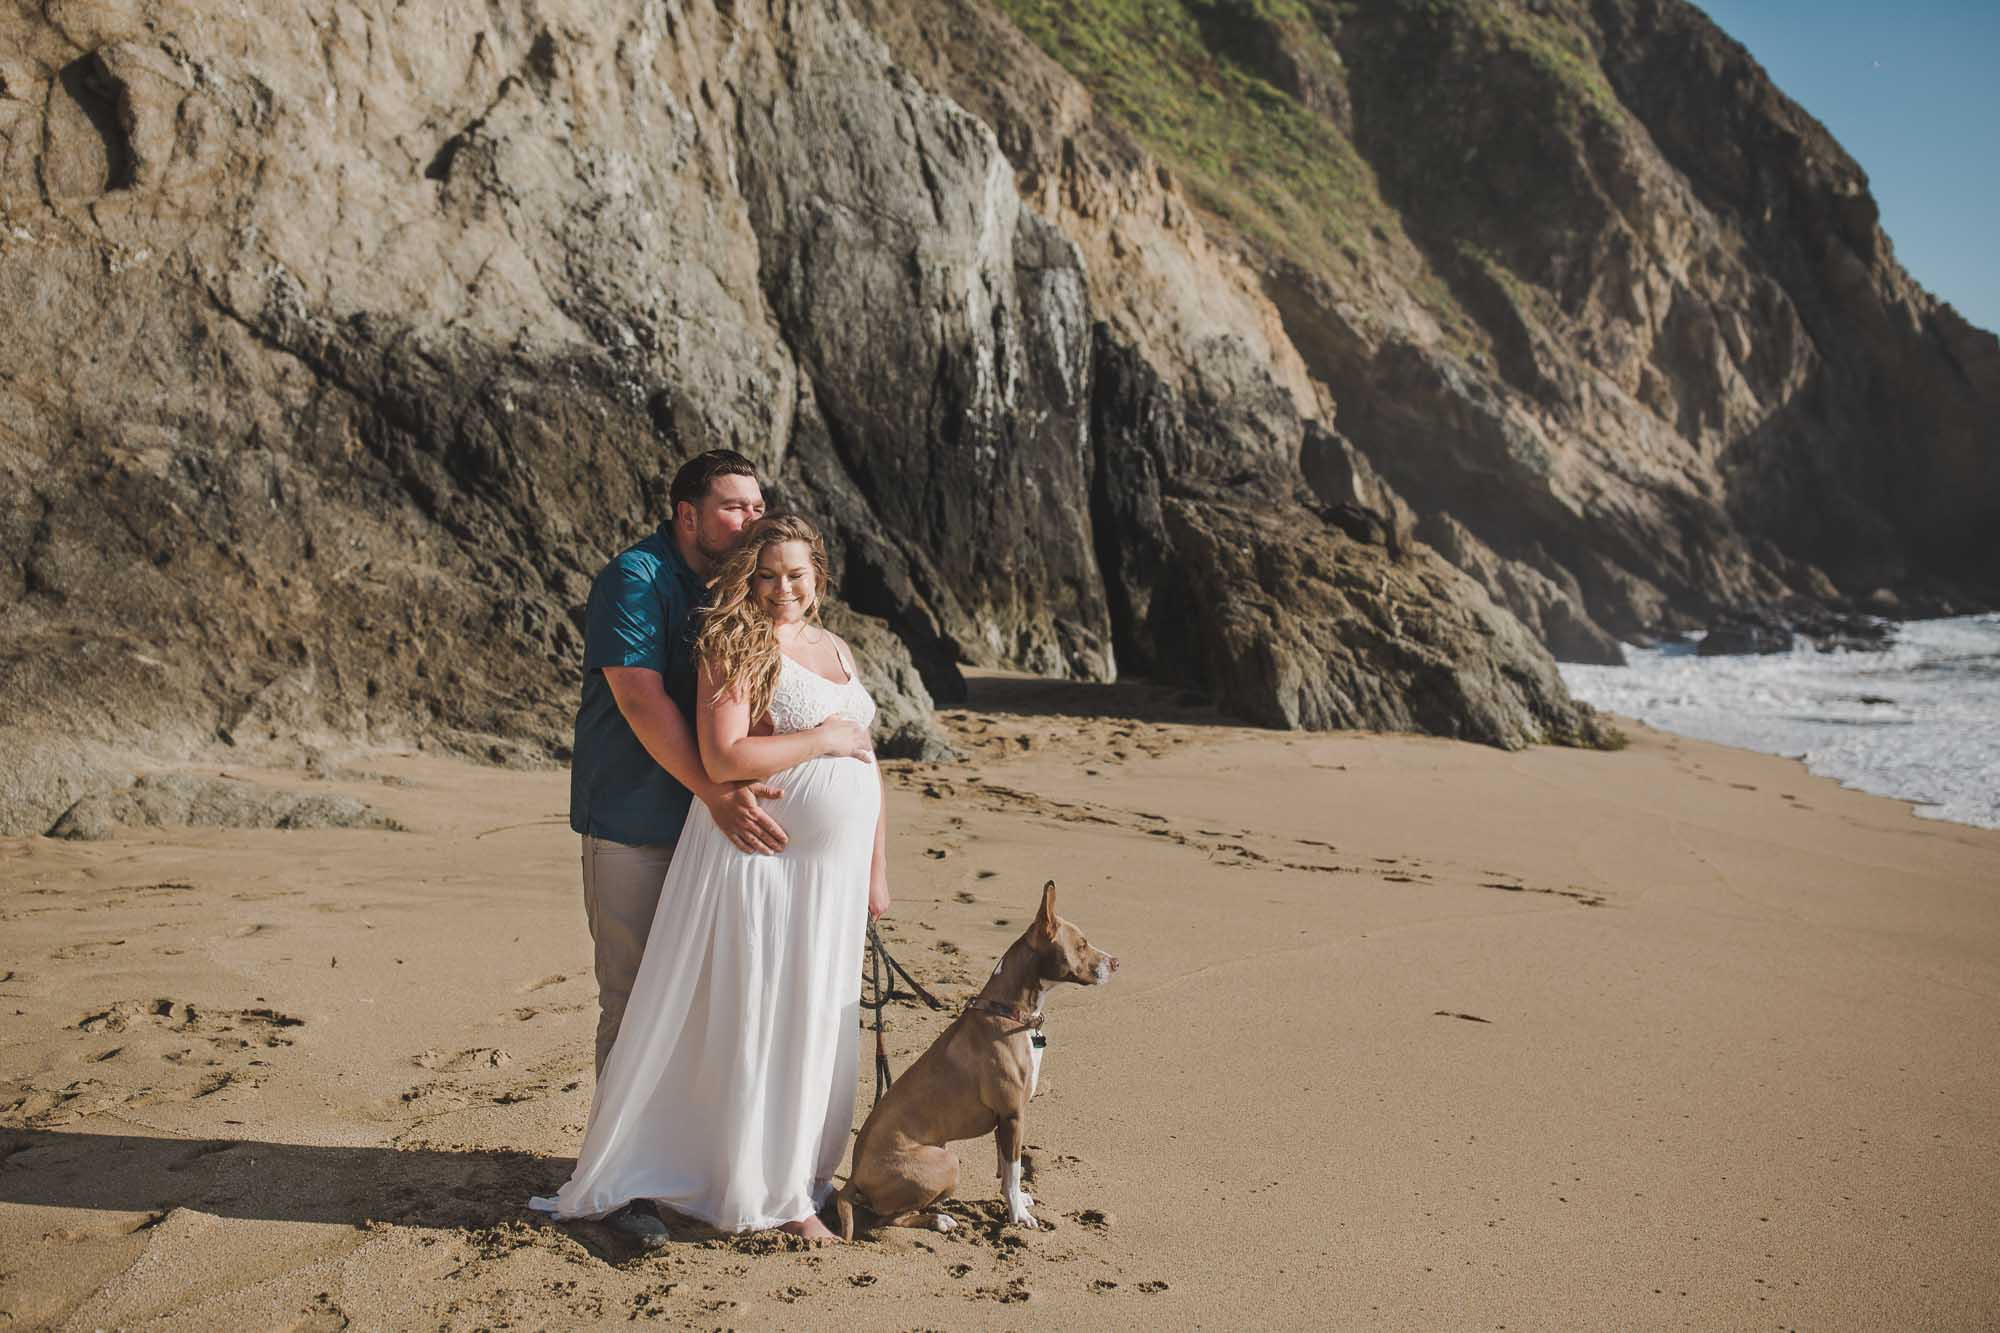 pacifica_maternity_session_california_family_photographer_00005.jpg